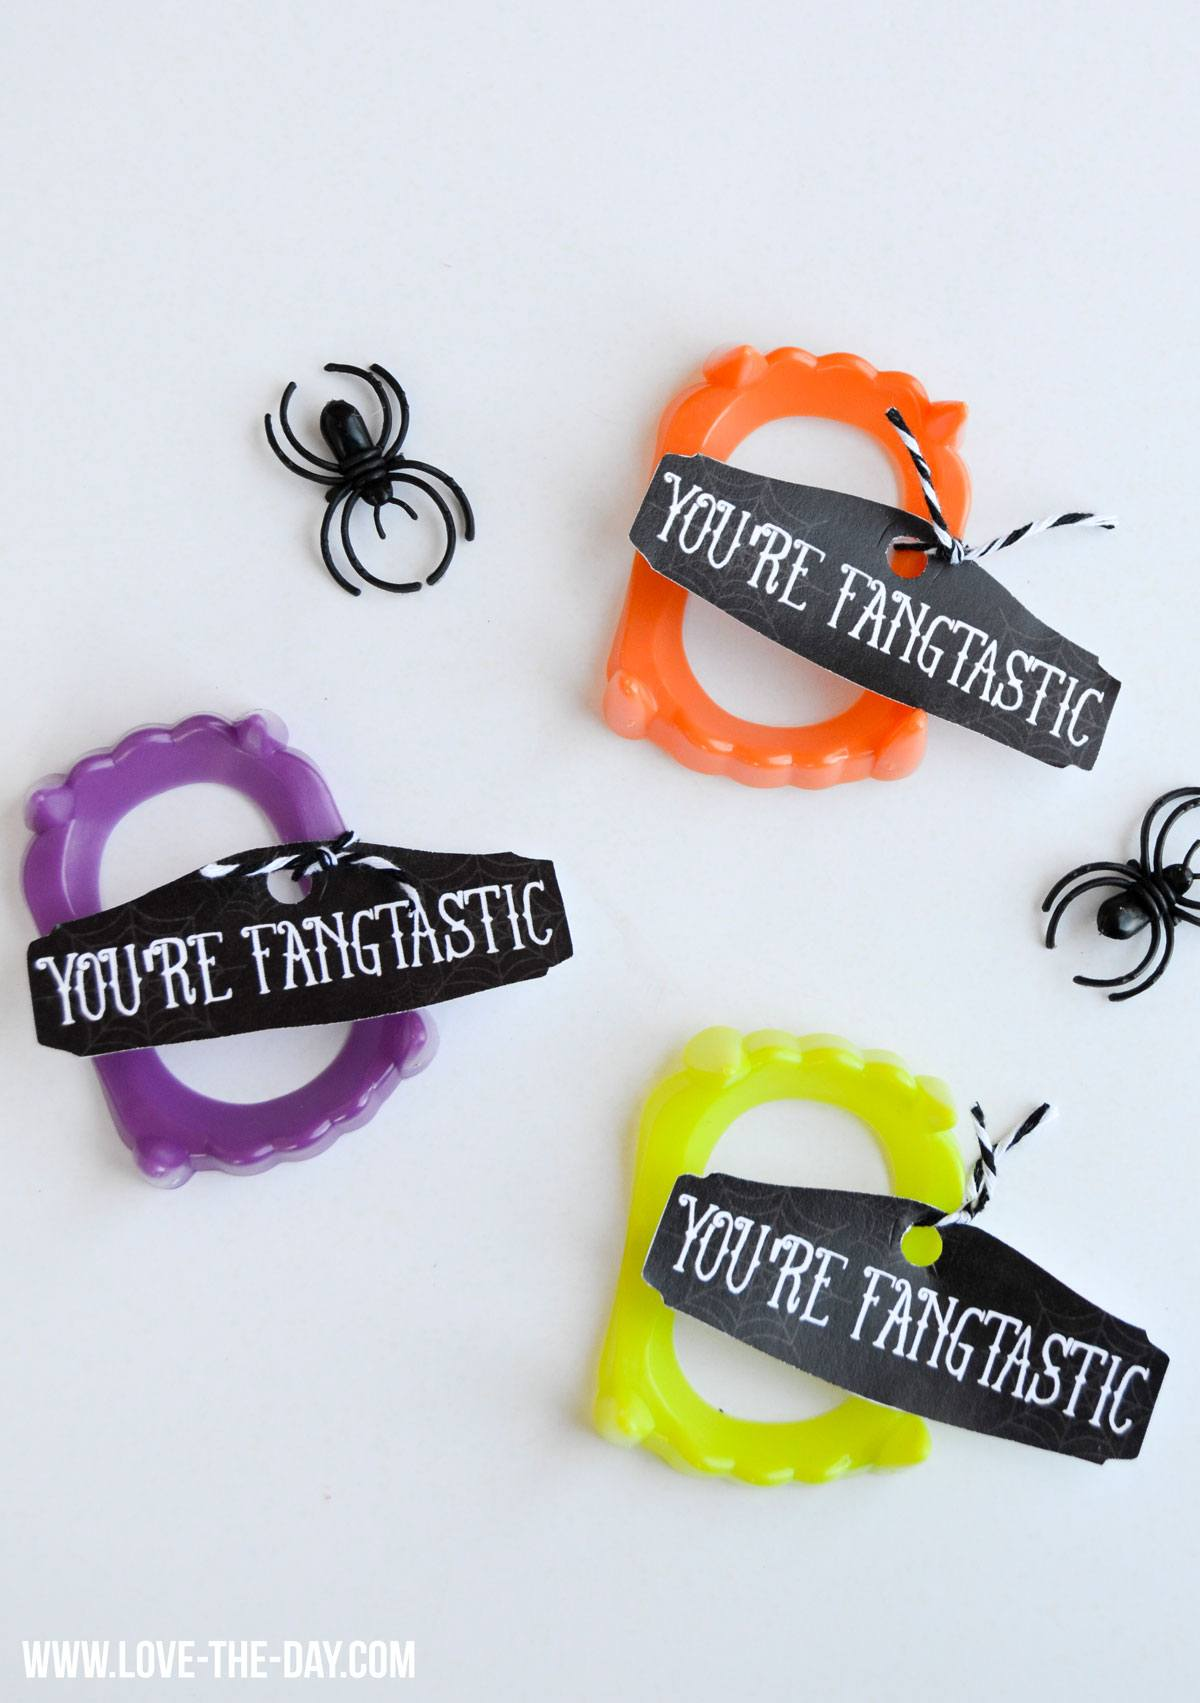 FANGtastic Halloween Idea & Free Printable by Love The Day